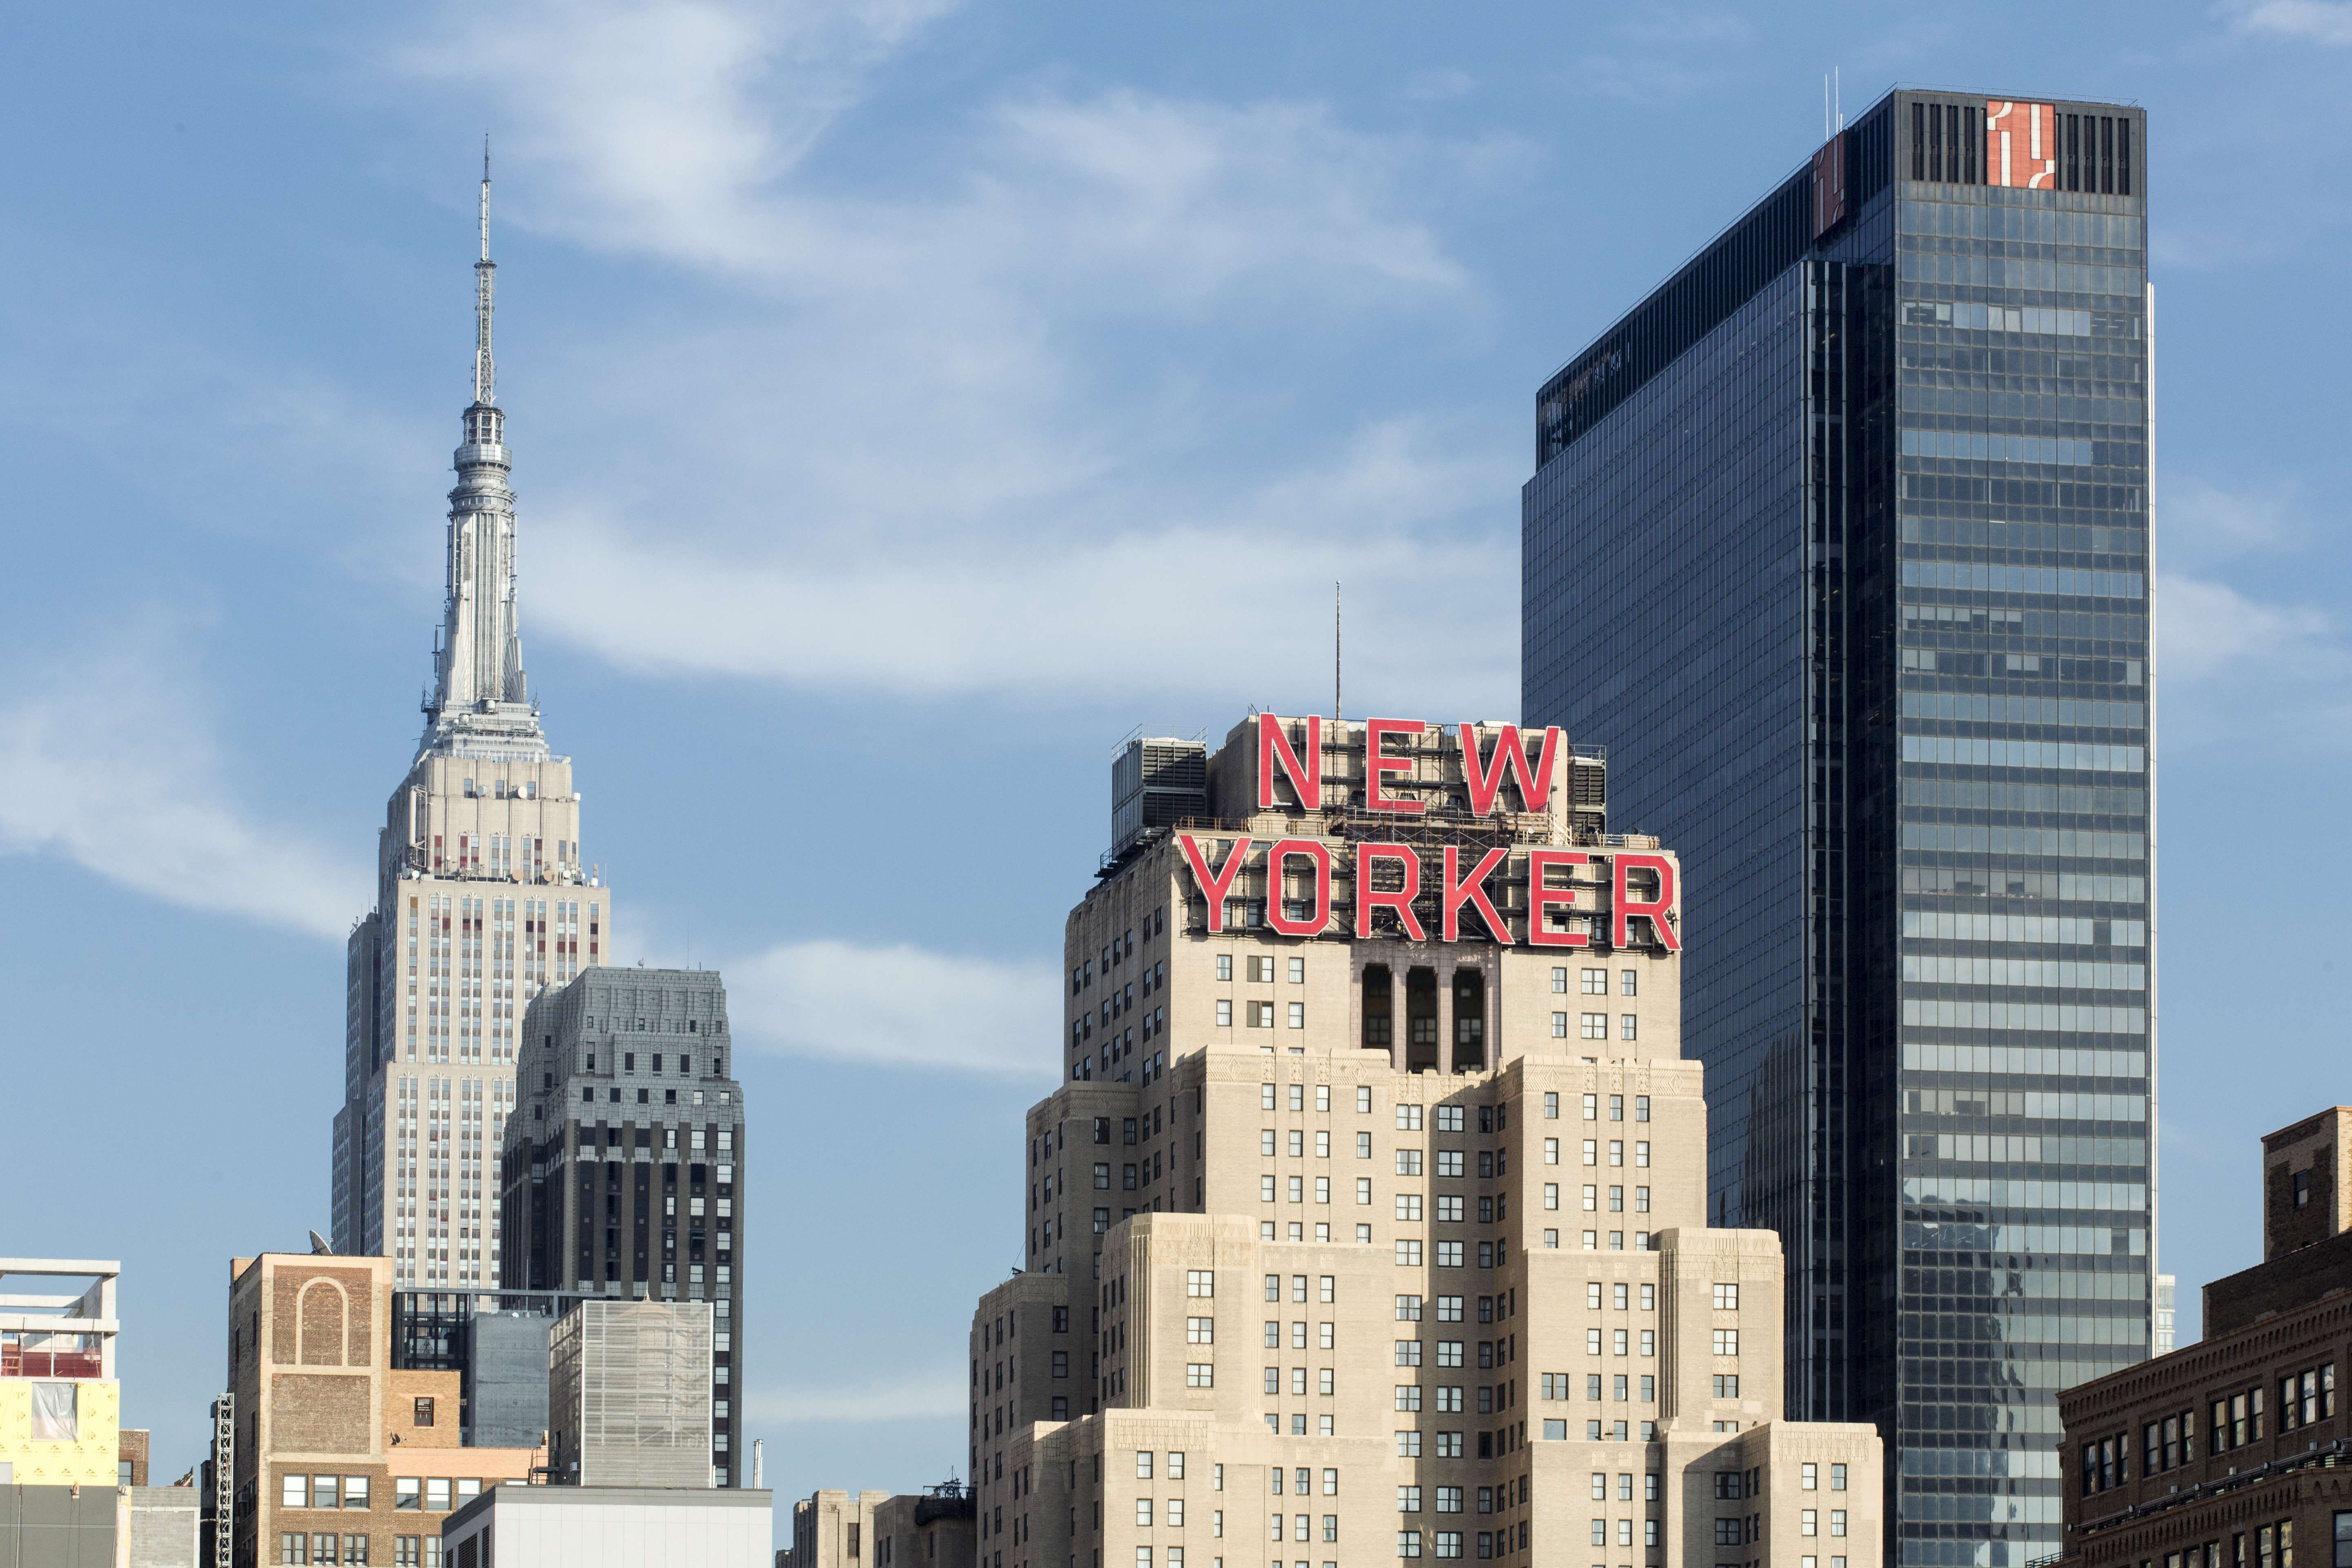 Pin By The New Yorker A Wyndham Hote On The New Yorker Hotel Penn Station Nyc New York Hotels Midtown Manhattan Hotels